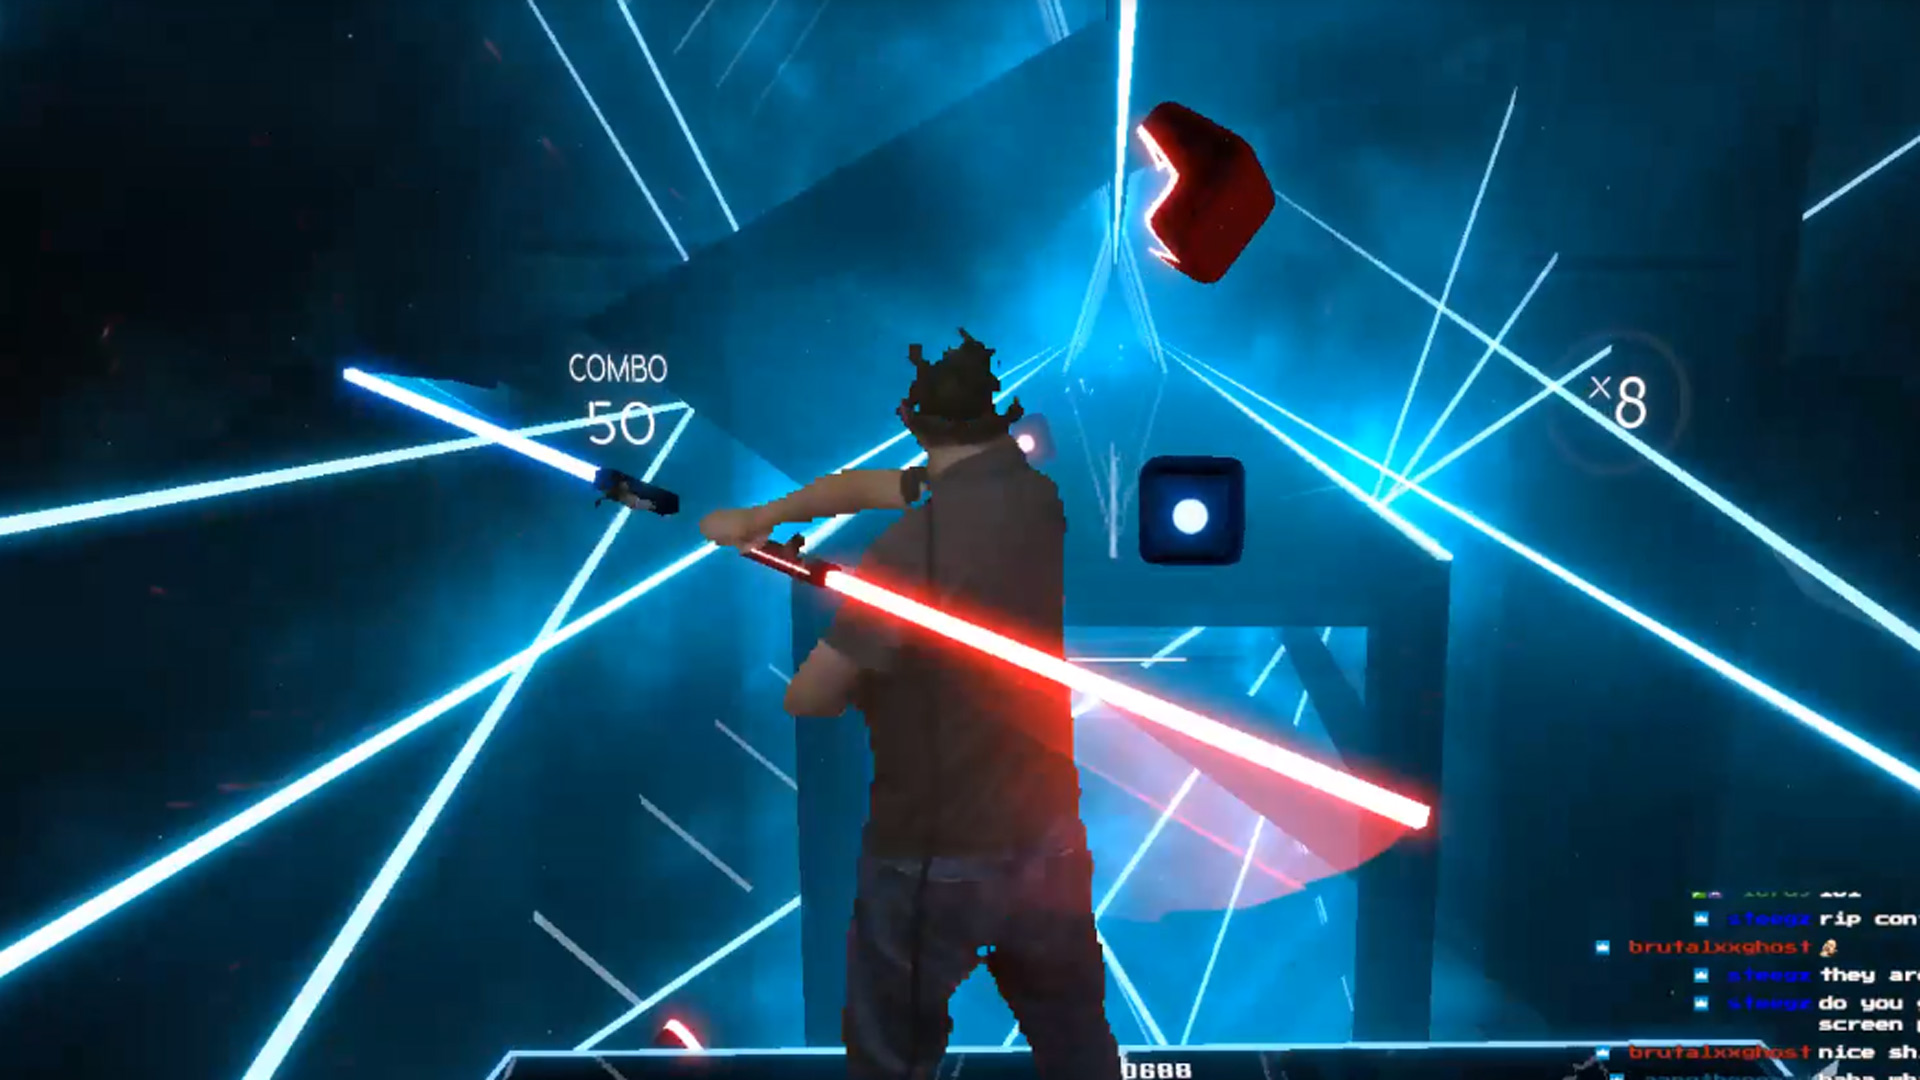 This Guy Modded Oculus Touch to Play 'Beat Saber' Darth Maul-style